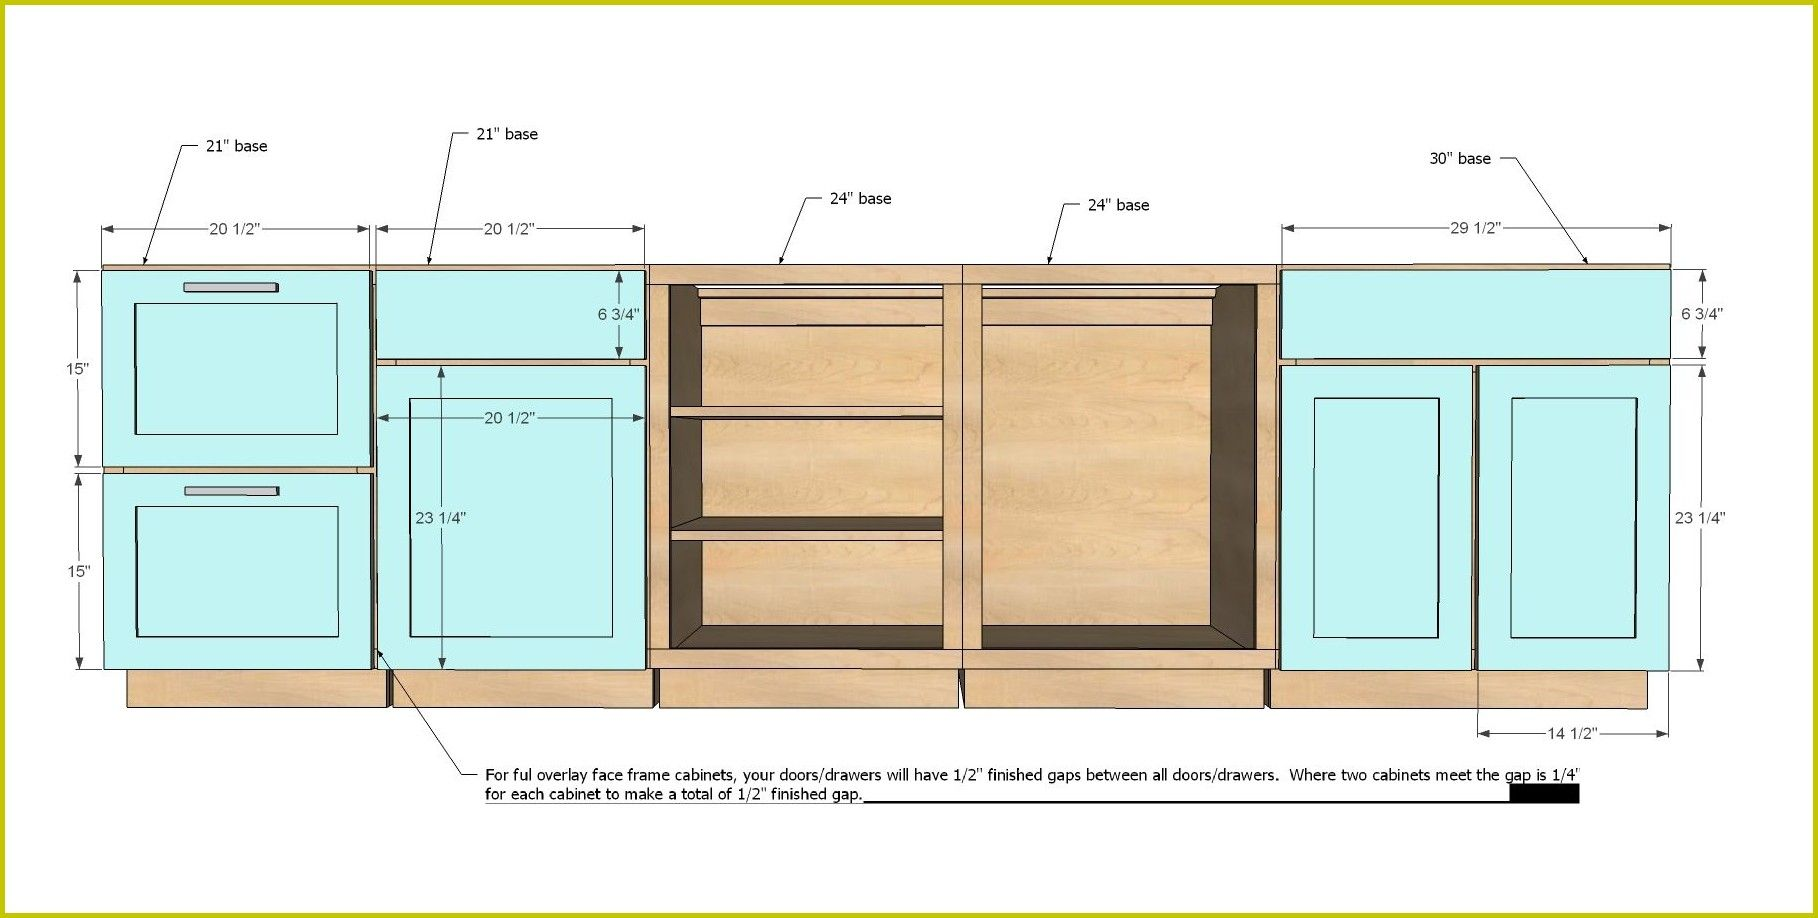 47 Reference Of Standard Kitchen Drawer Sizes In Mm In 2020 Kitchen Cabinets Height Kitchen Base Cabinets Kitchen Cabinet Plans